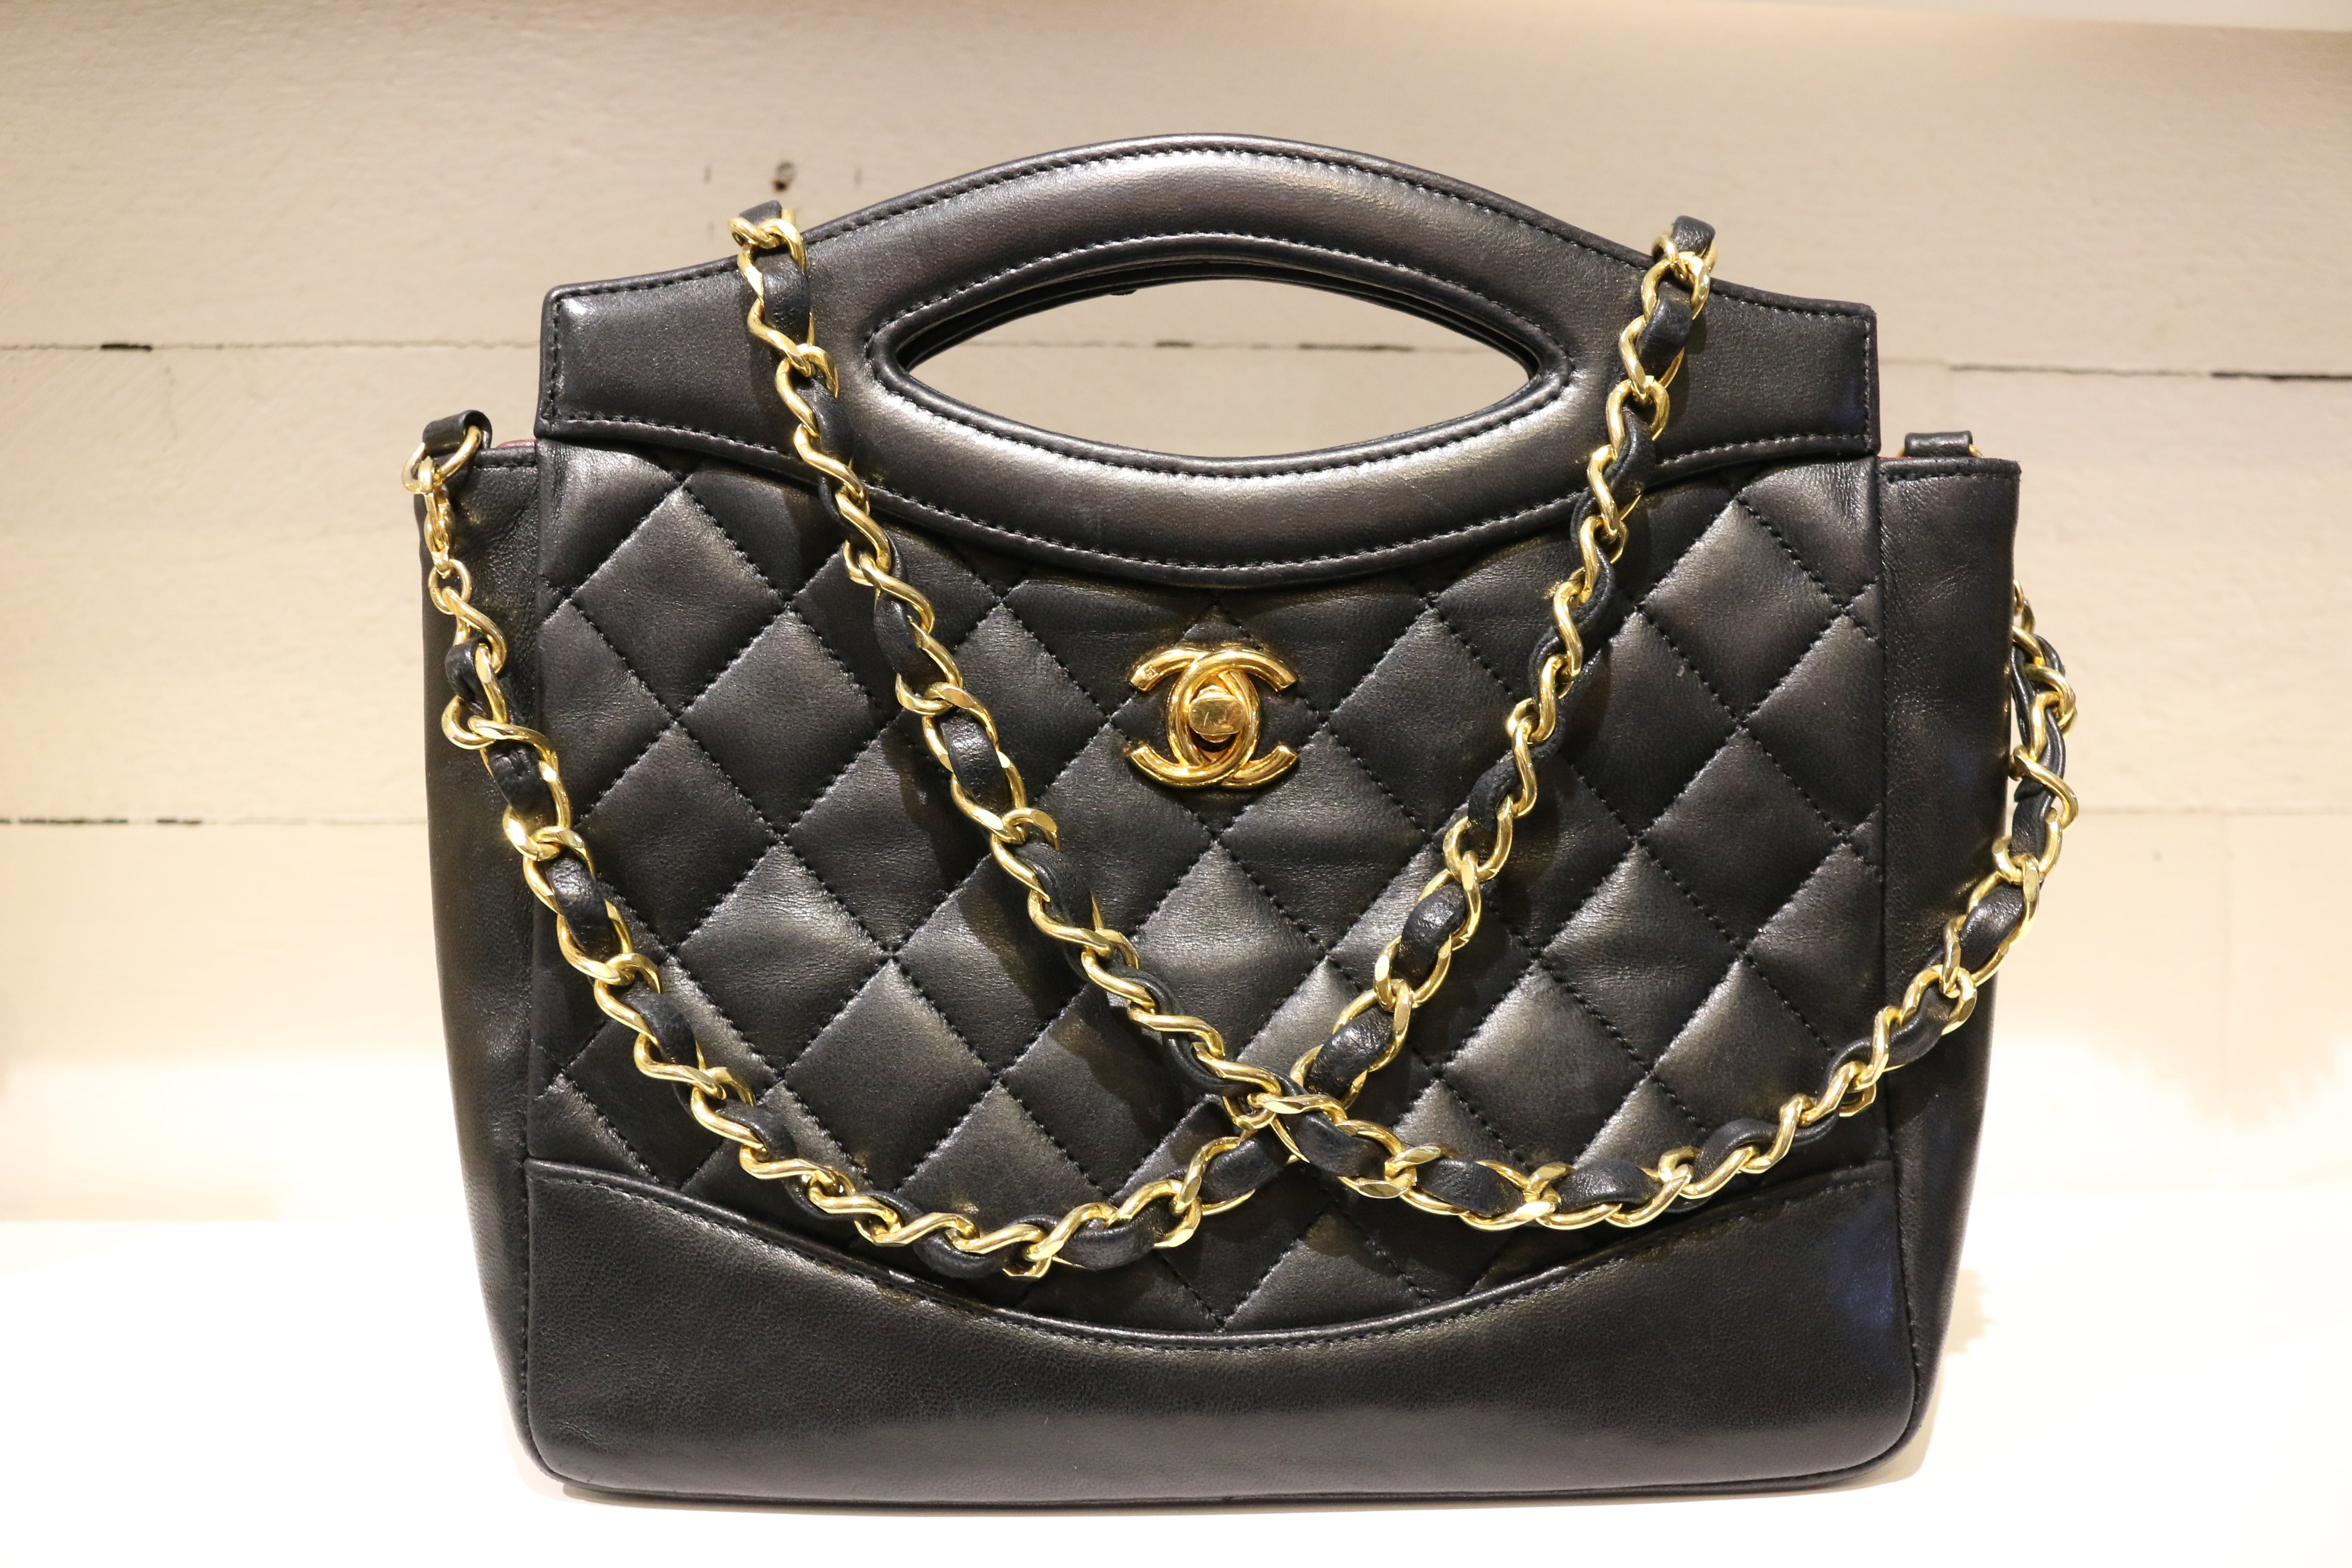 efc83f1d9e7c Chanel Classic Black Quilted Lambskin Leather Two ways Shoulder Bag For Sale  at 1stdibs